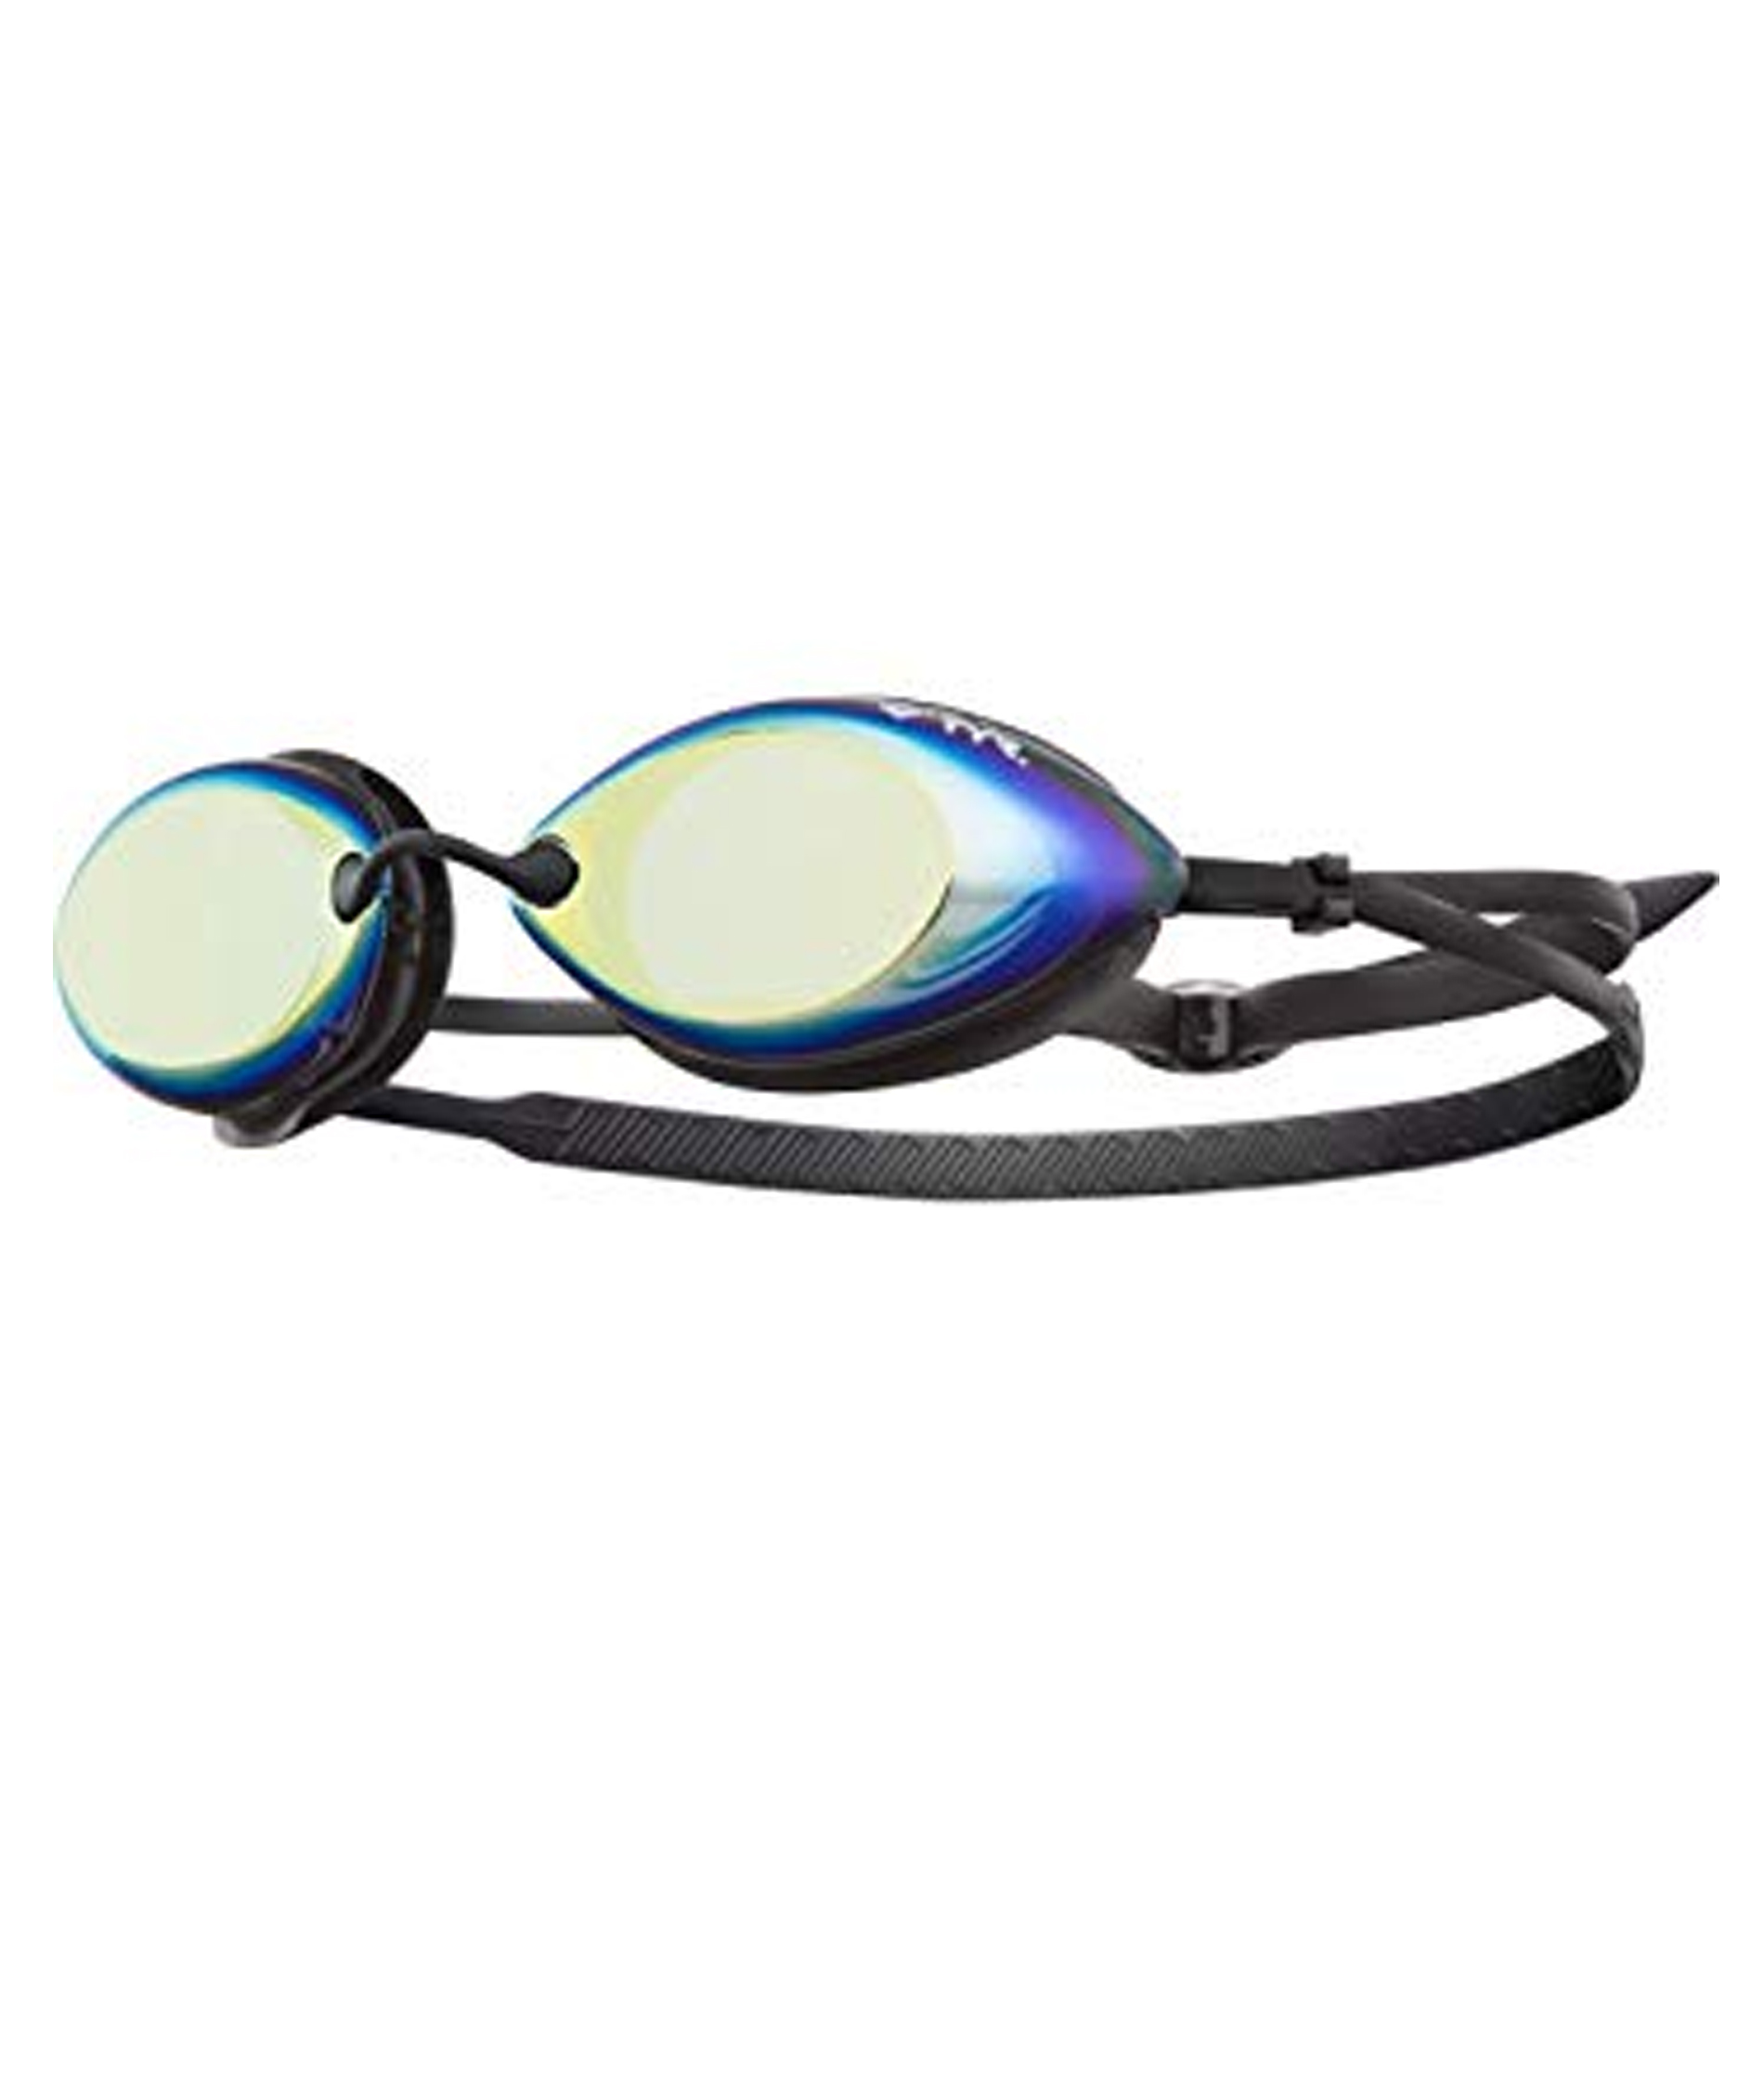 TYR Tracer-X Racing Mirrored Adult Goggles - Black/Gold